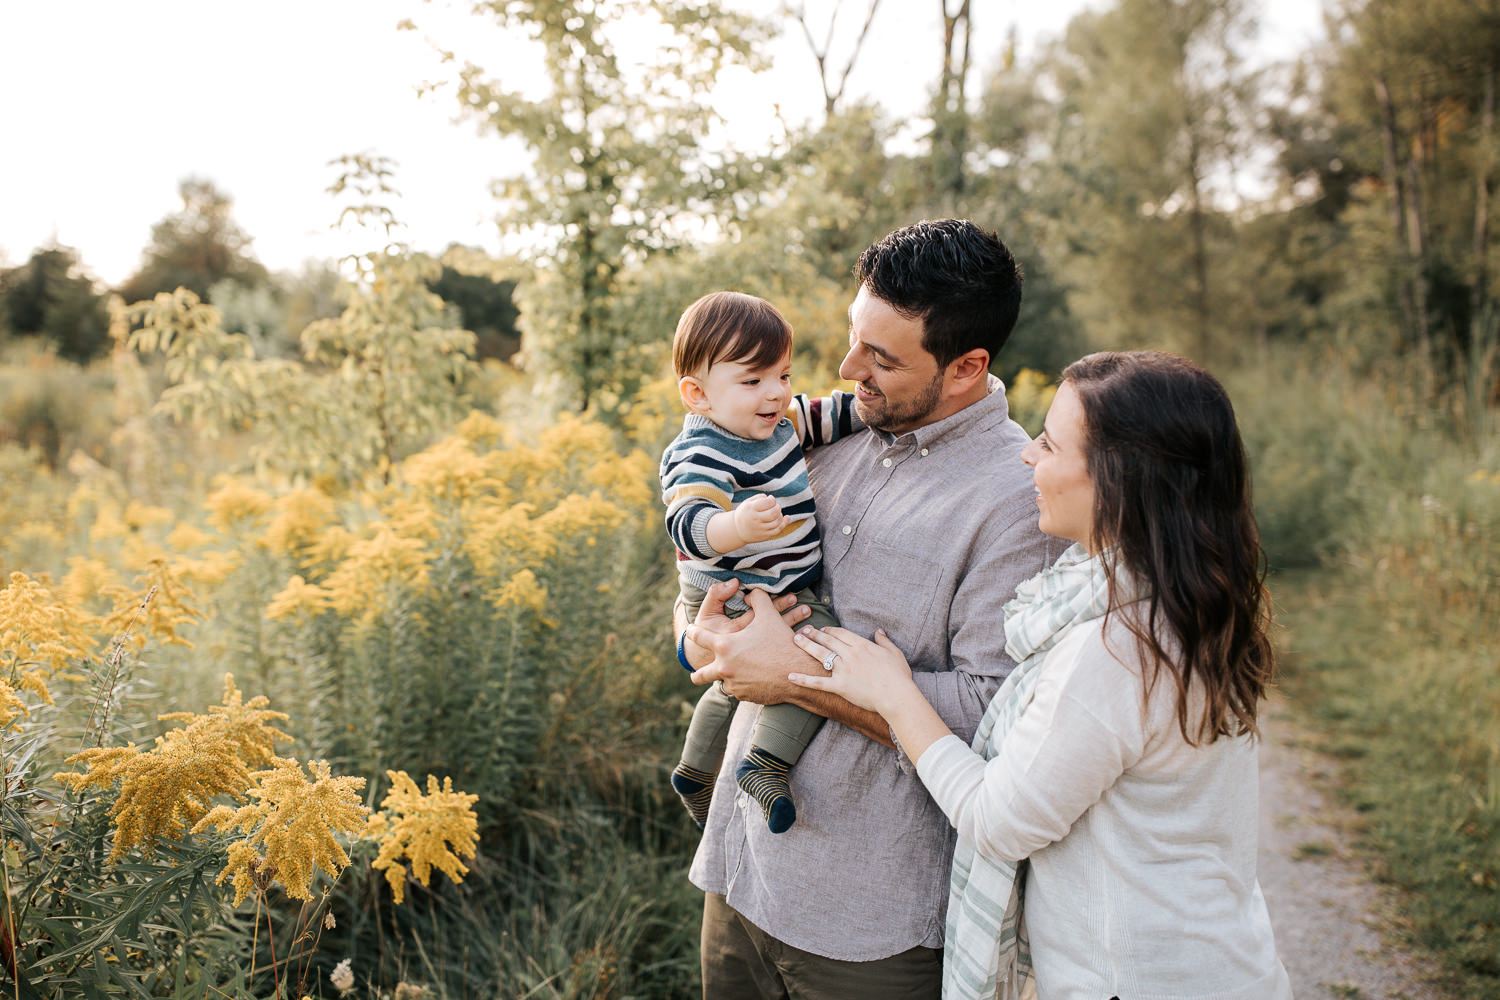 family of 3 standing on path in golden field, dad holding 1 year old baby boy, mom standing behind husband, hand on his arm, looking at son - Stouffville Lifestyle Photos